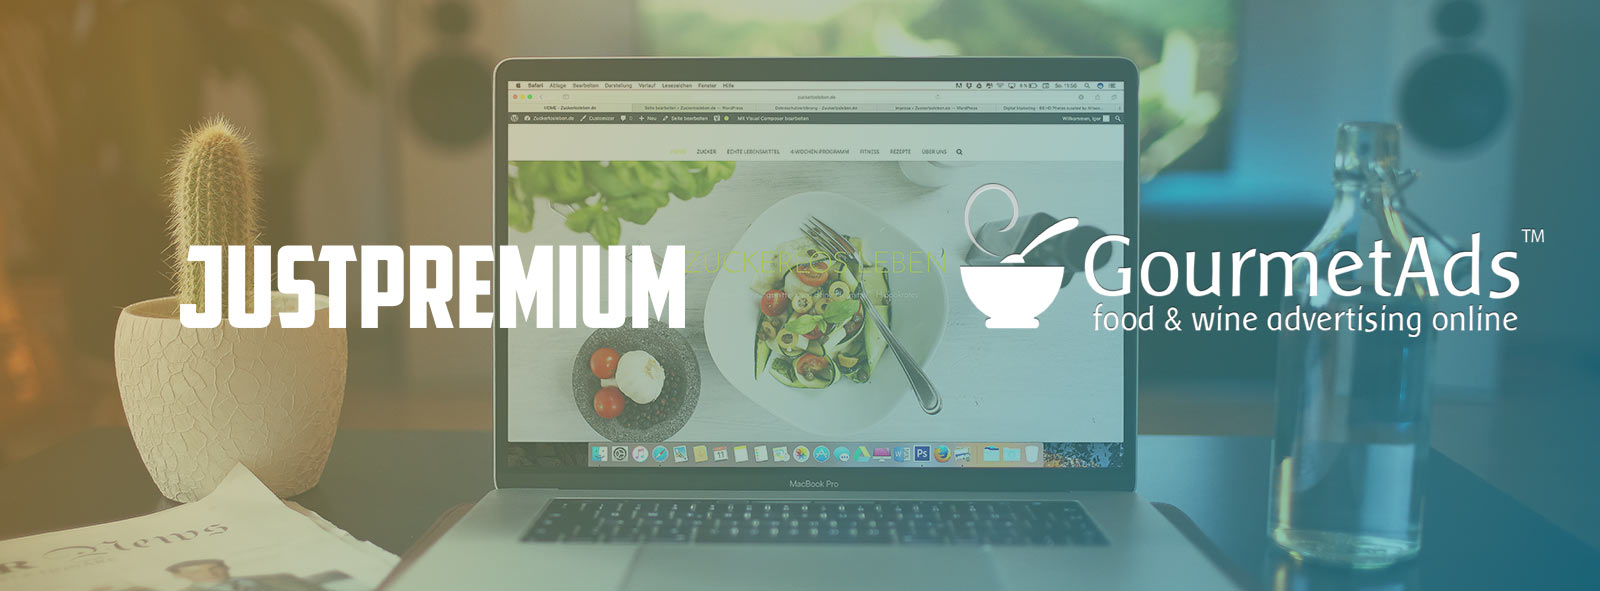 JustPremium is teaming up with Gourmet Ads